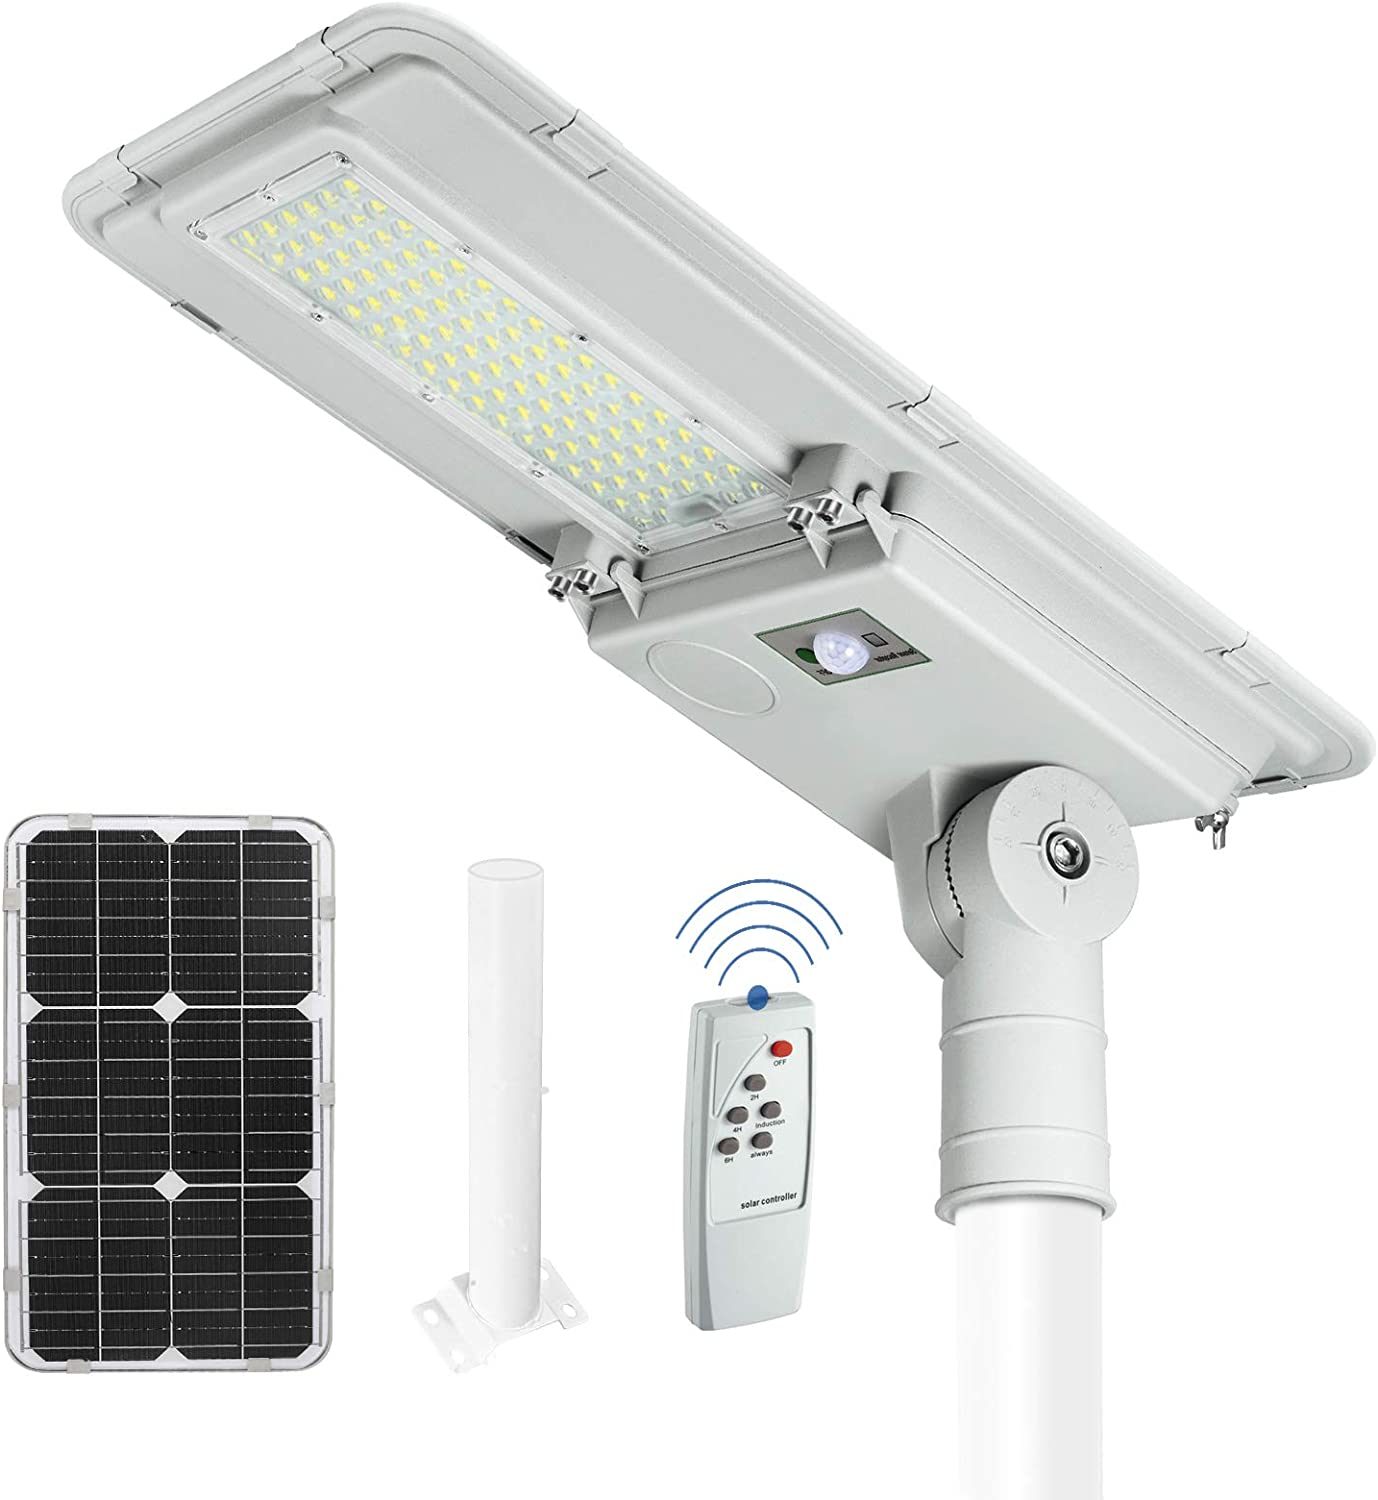 Minyuco discount Solar Street Lights Outdoor Light - At the price Control 100W P